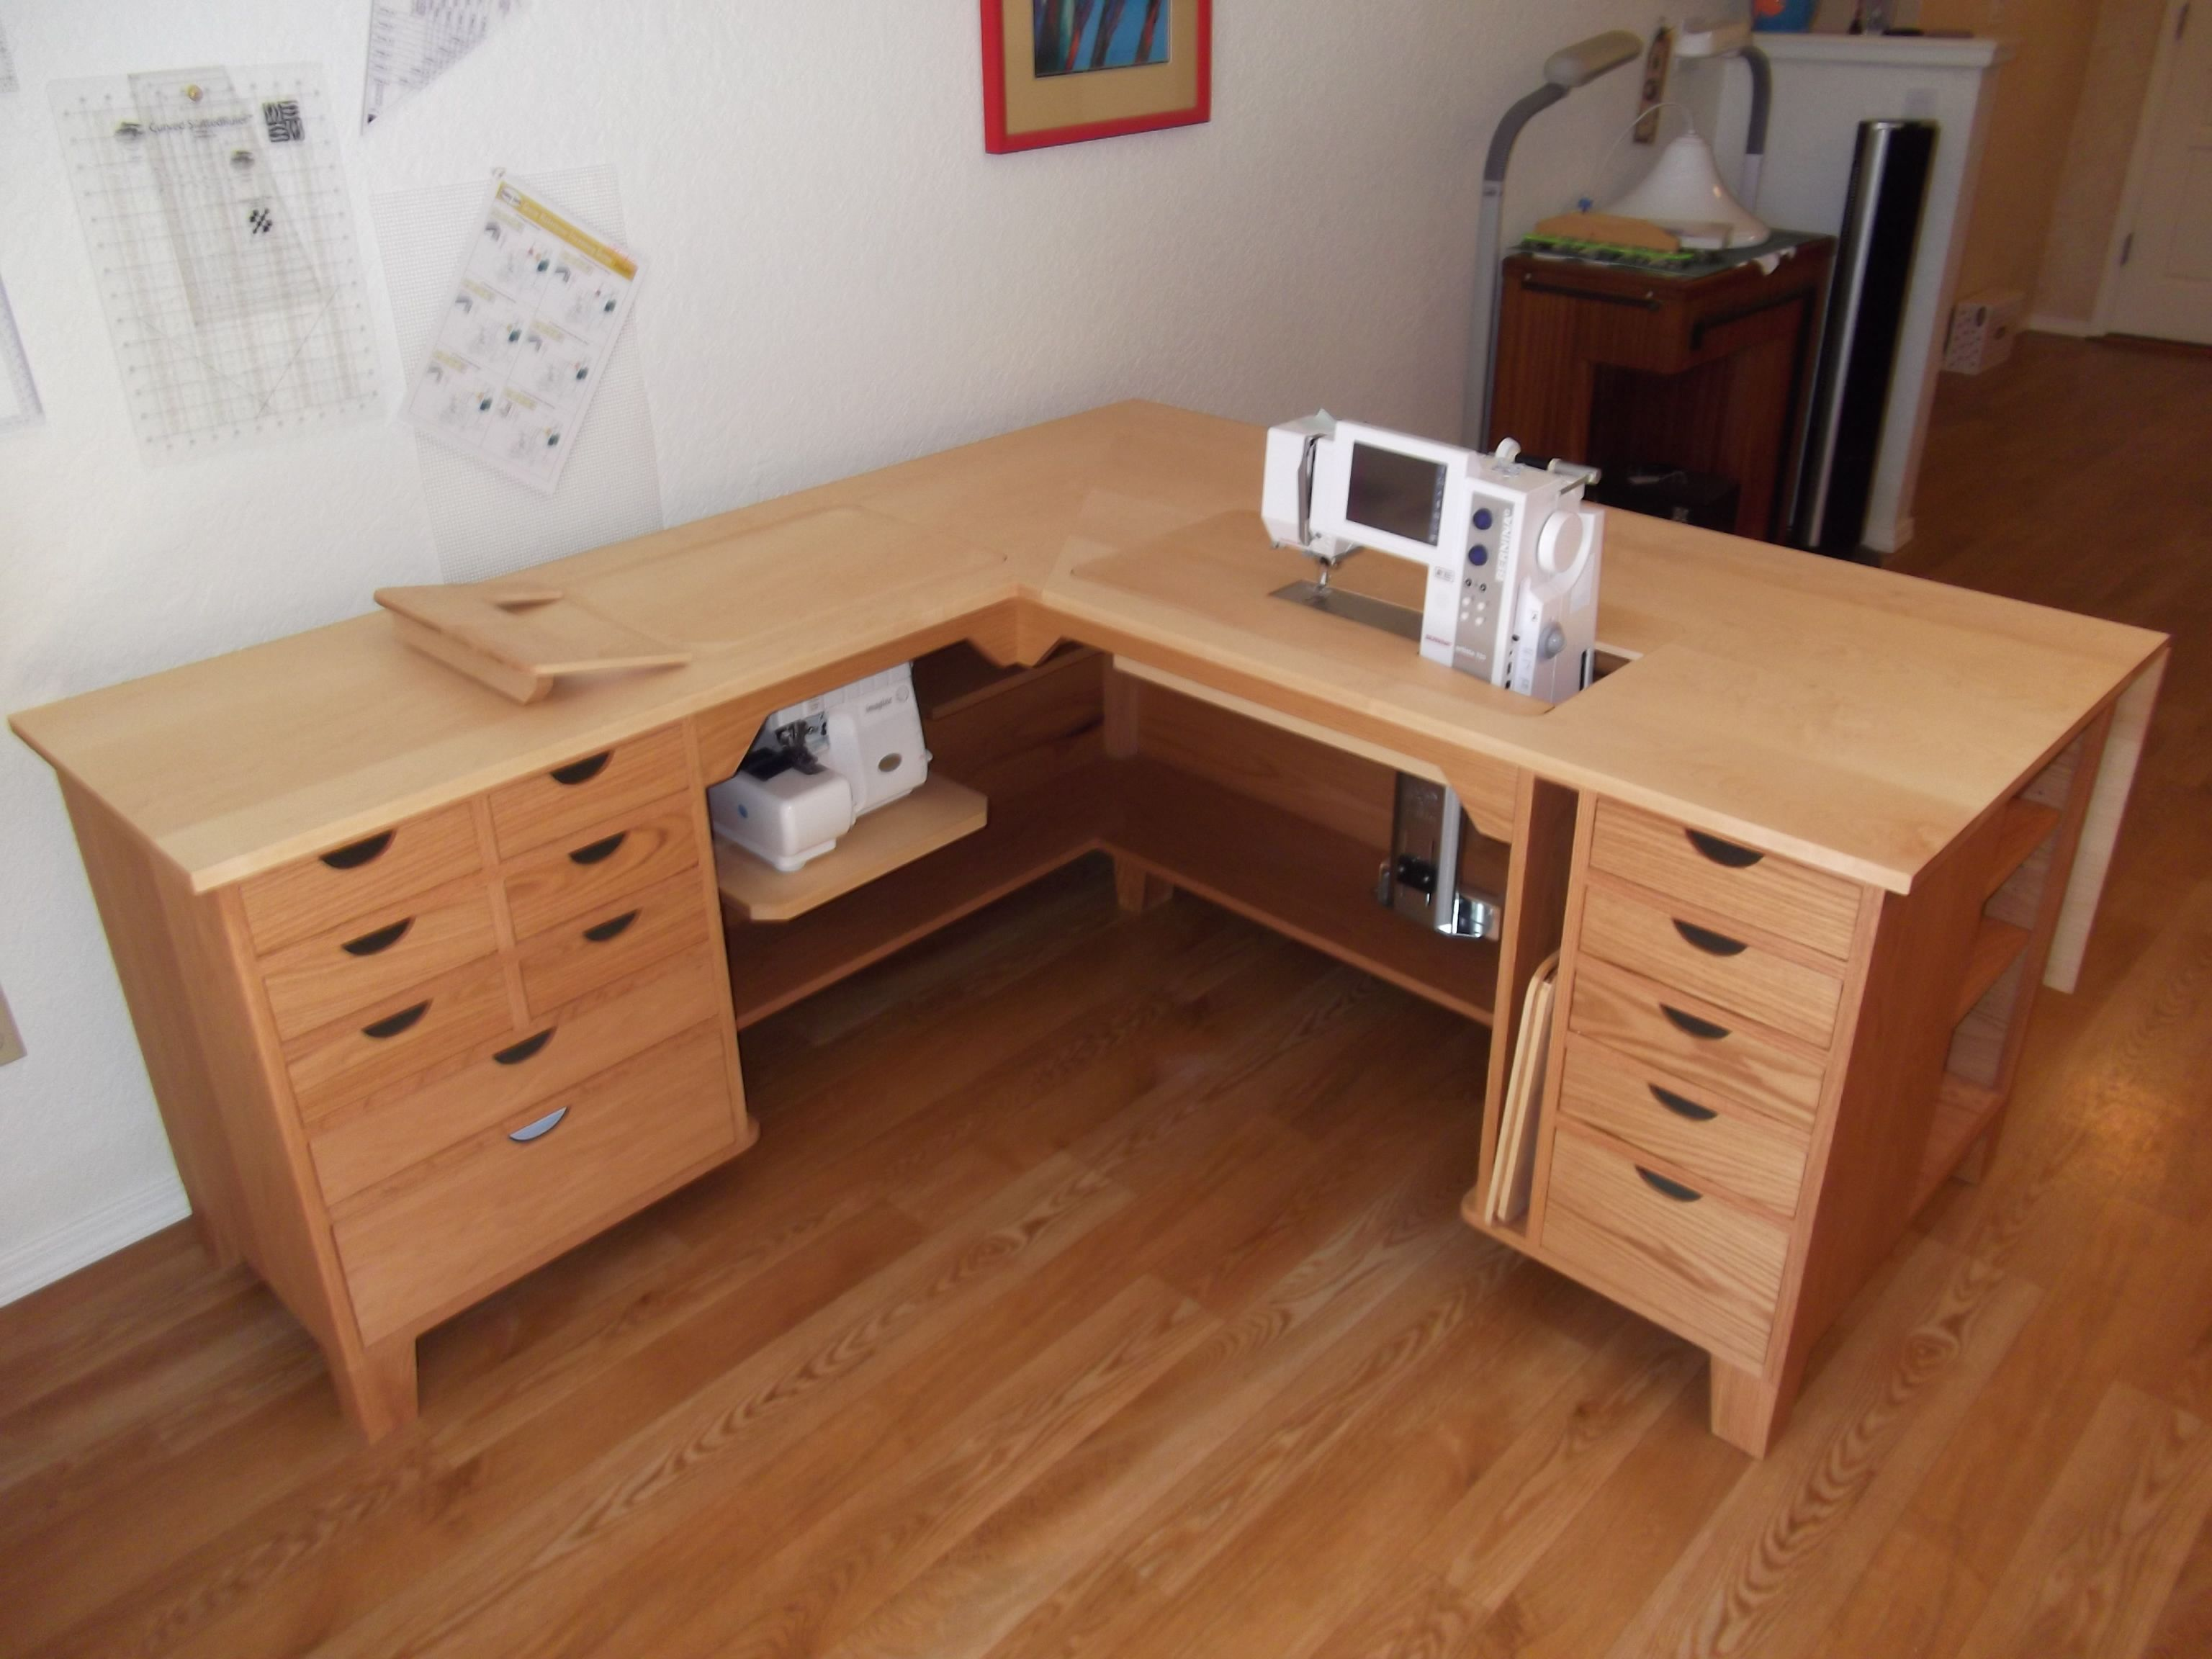 This Sewing Unit Features A Red Oak Base With A Maple Top